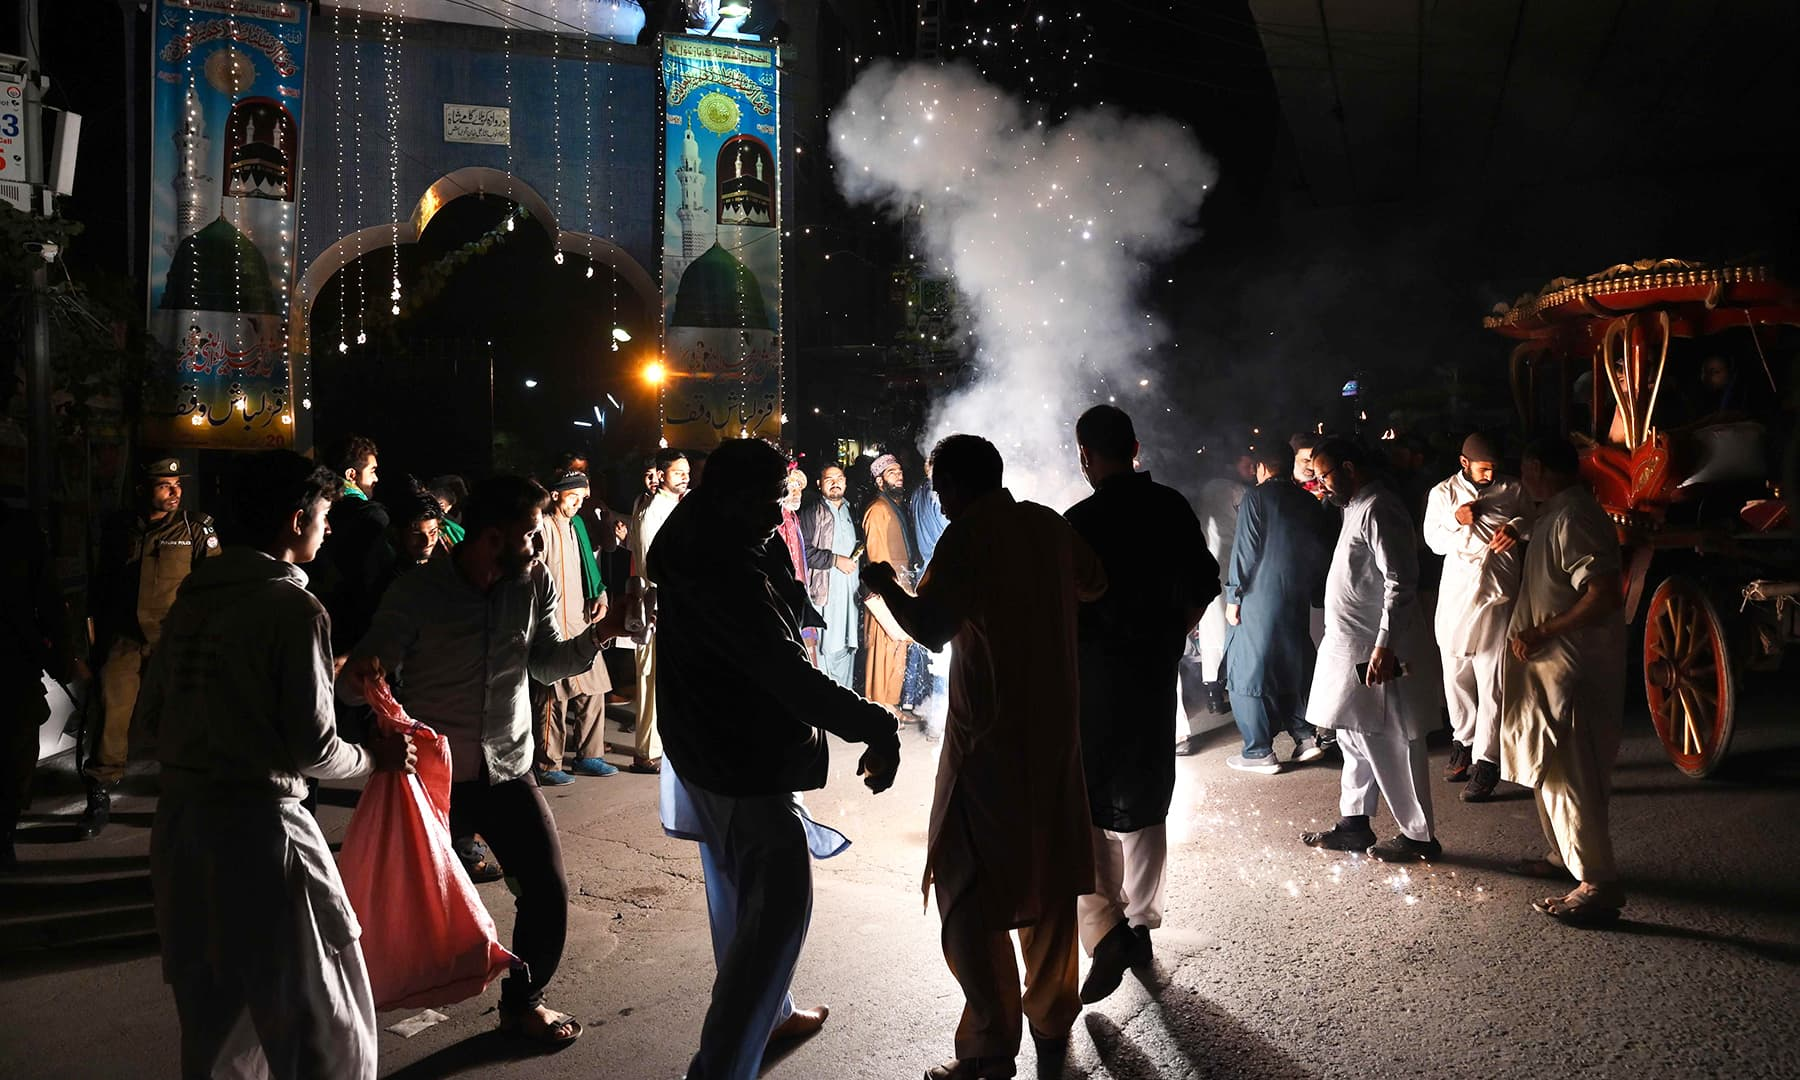 A group of men celebrate with fireworks the eve of Eid-i-Miladun Nabi on Saturday. — AFP